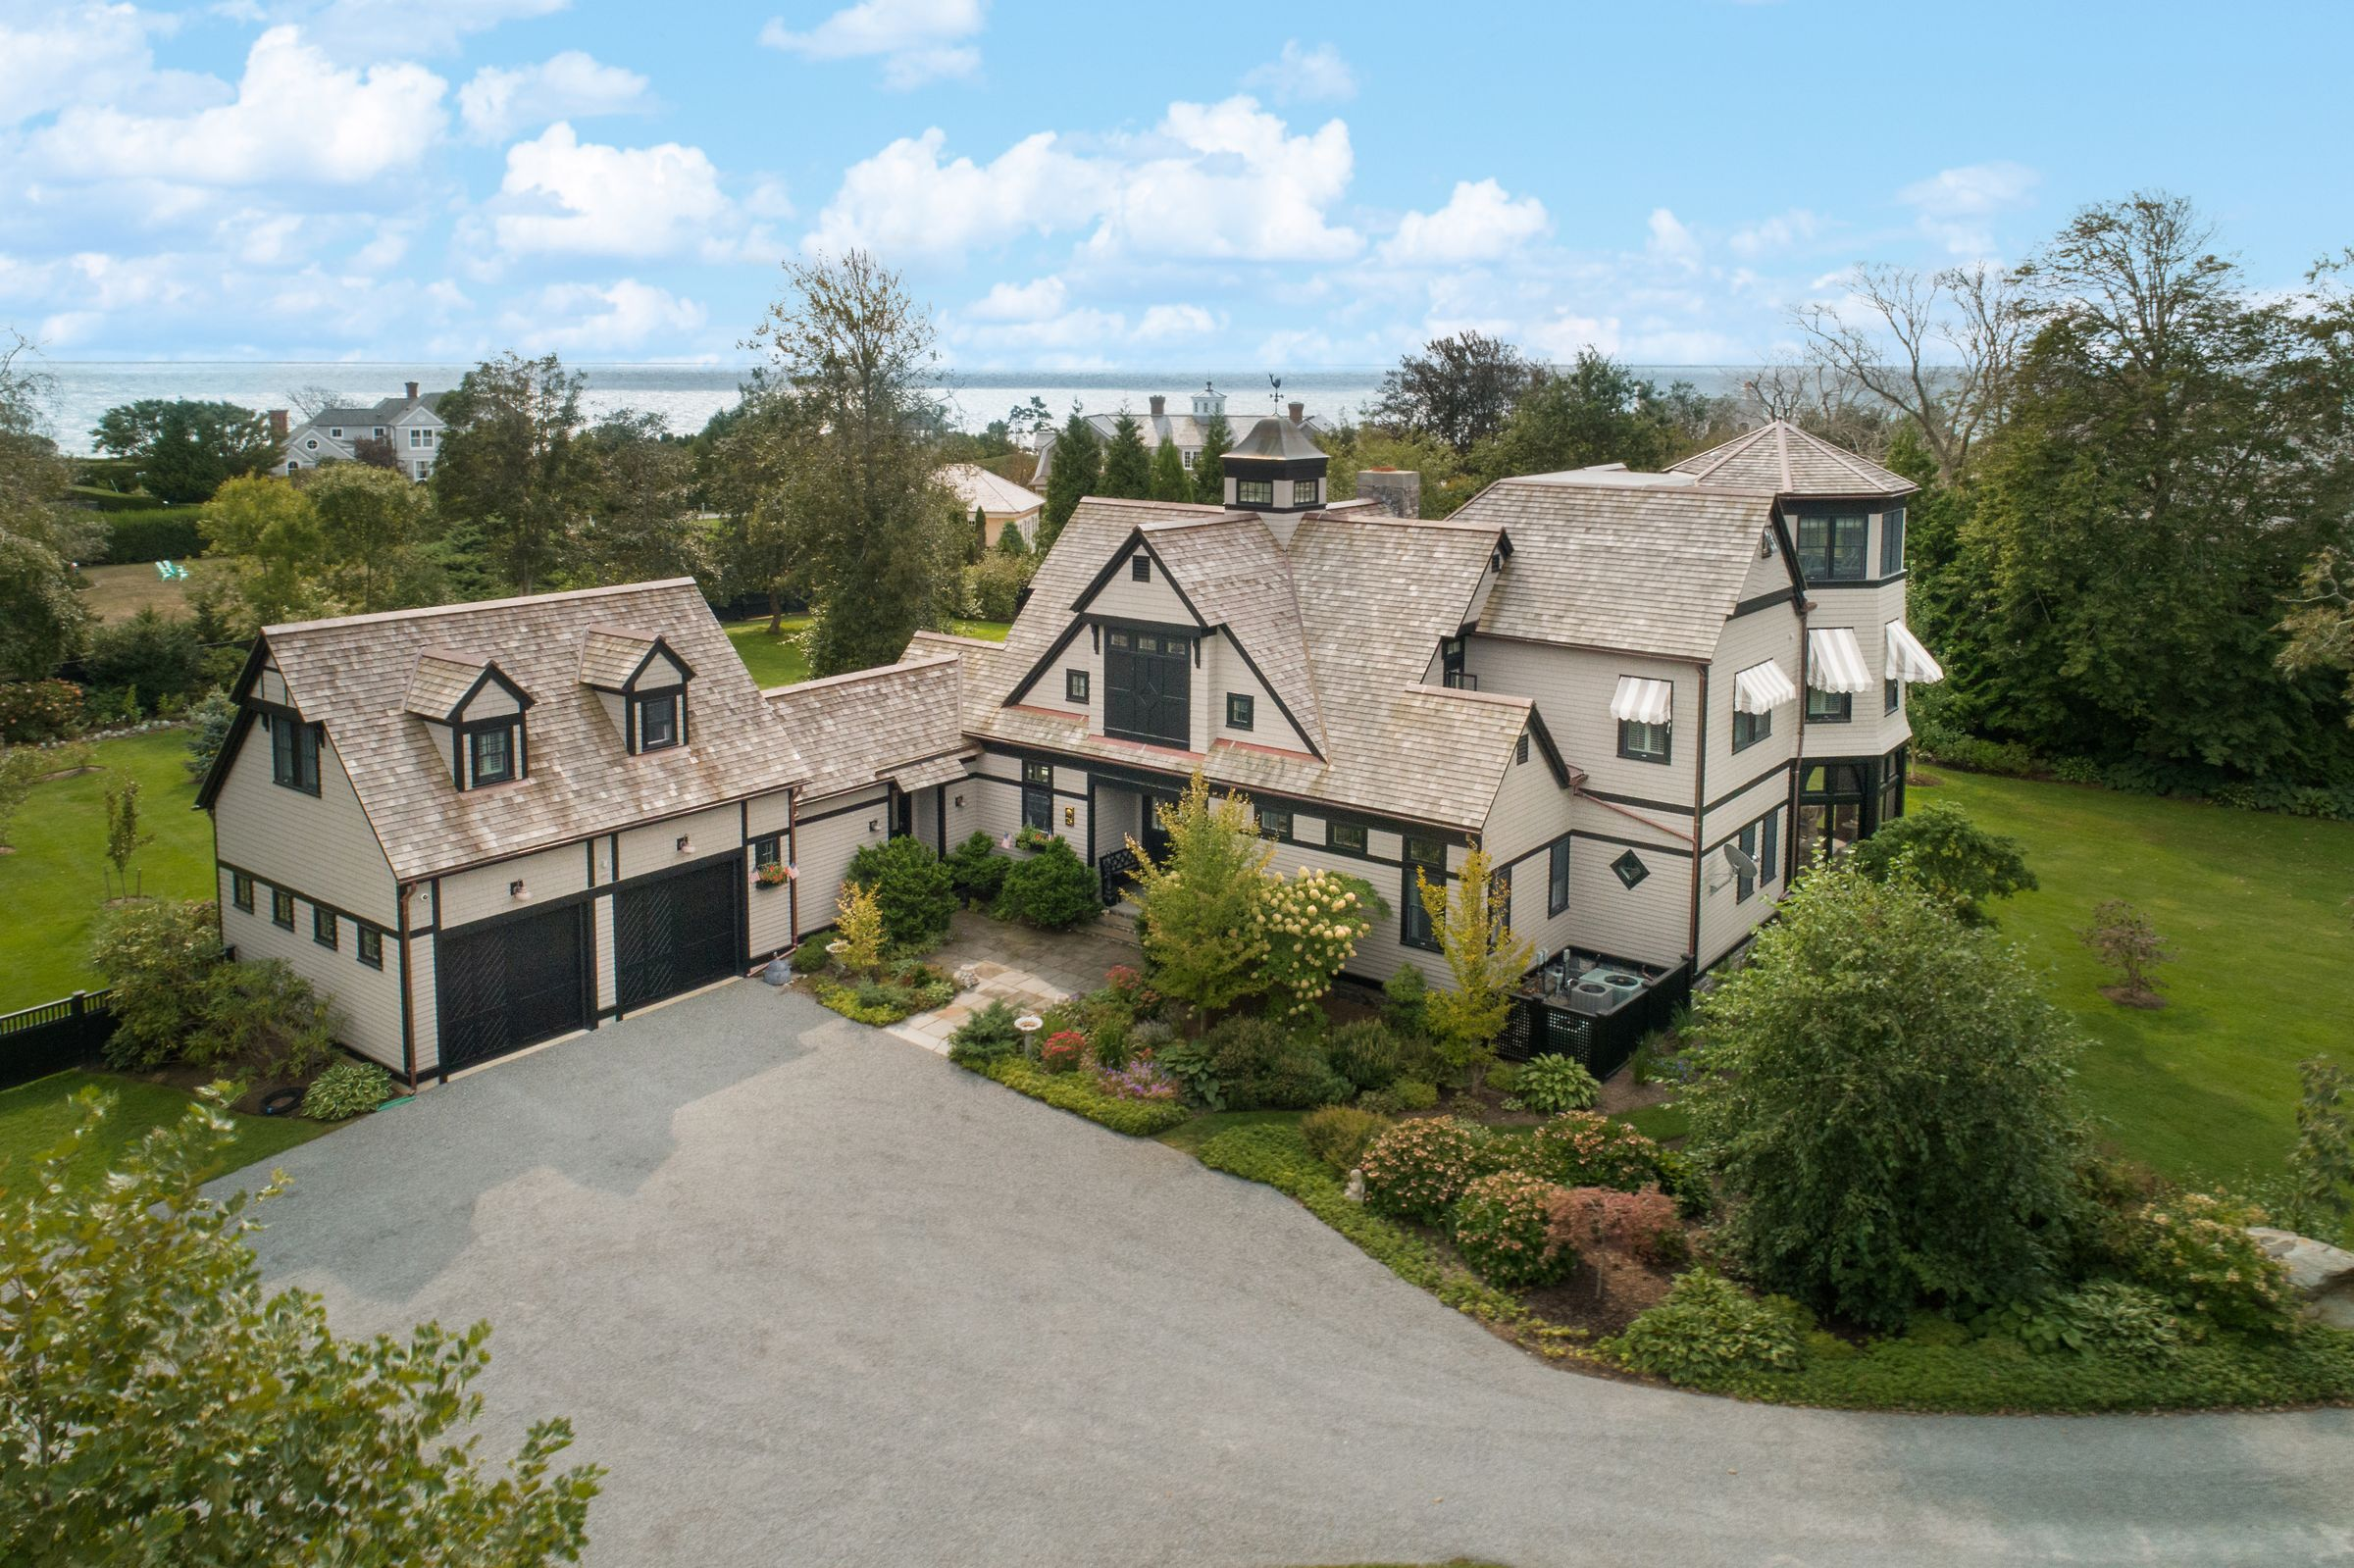 BELLEVUE AVENUE HOME SELLS FOR $4,700,000,  MARKING SECOND HIGHEST SALE IN NEWPORT YEAR-TO-DATE*